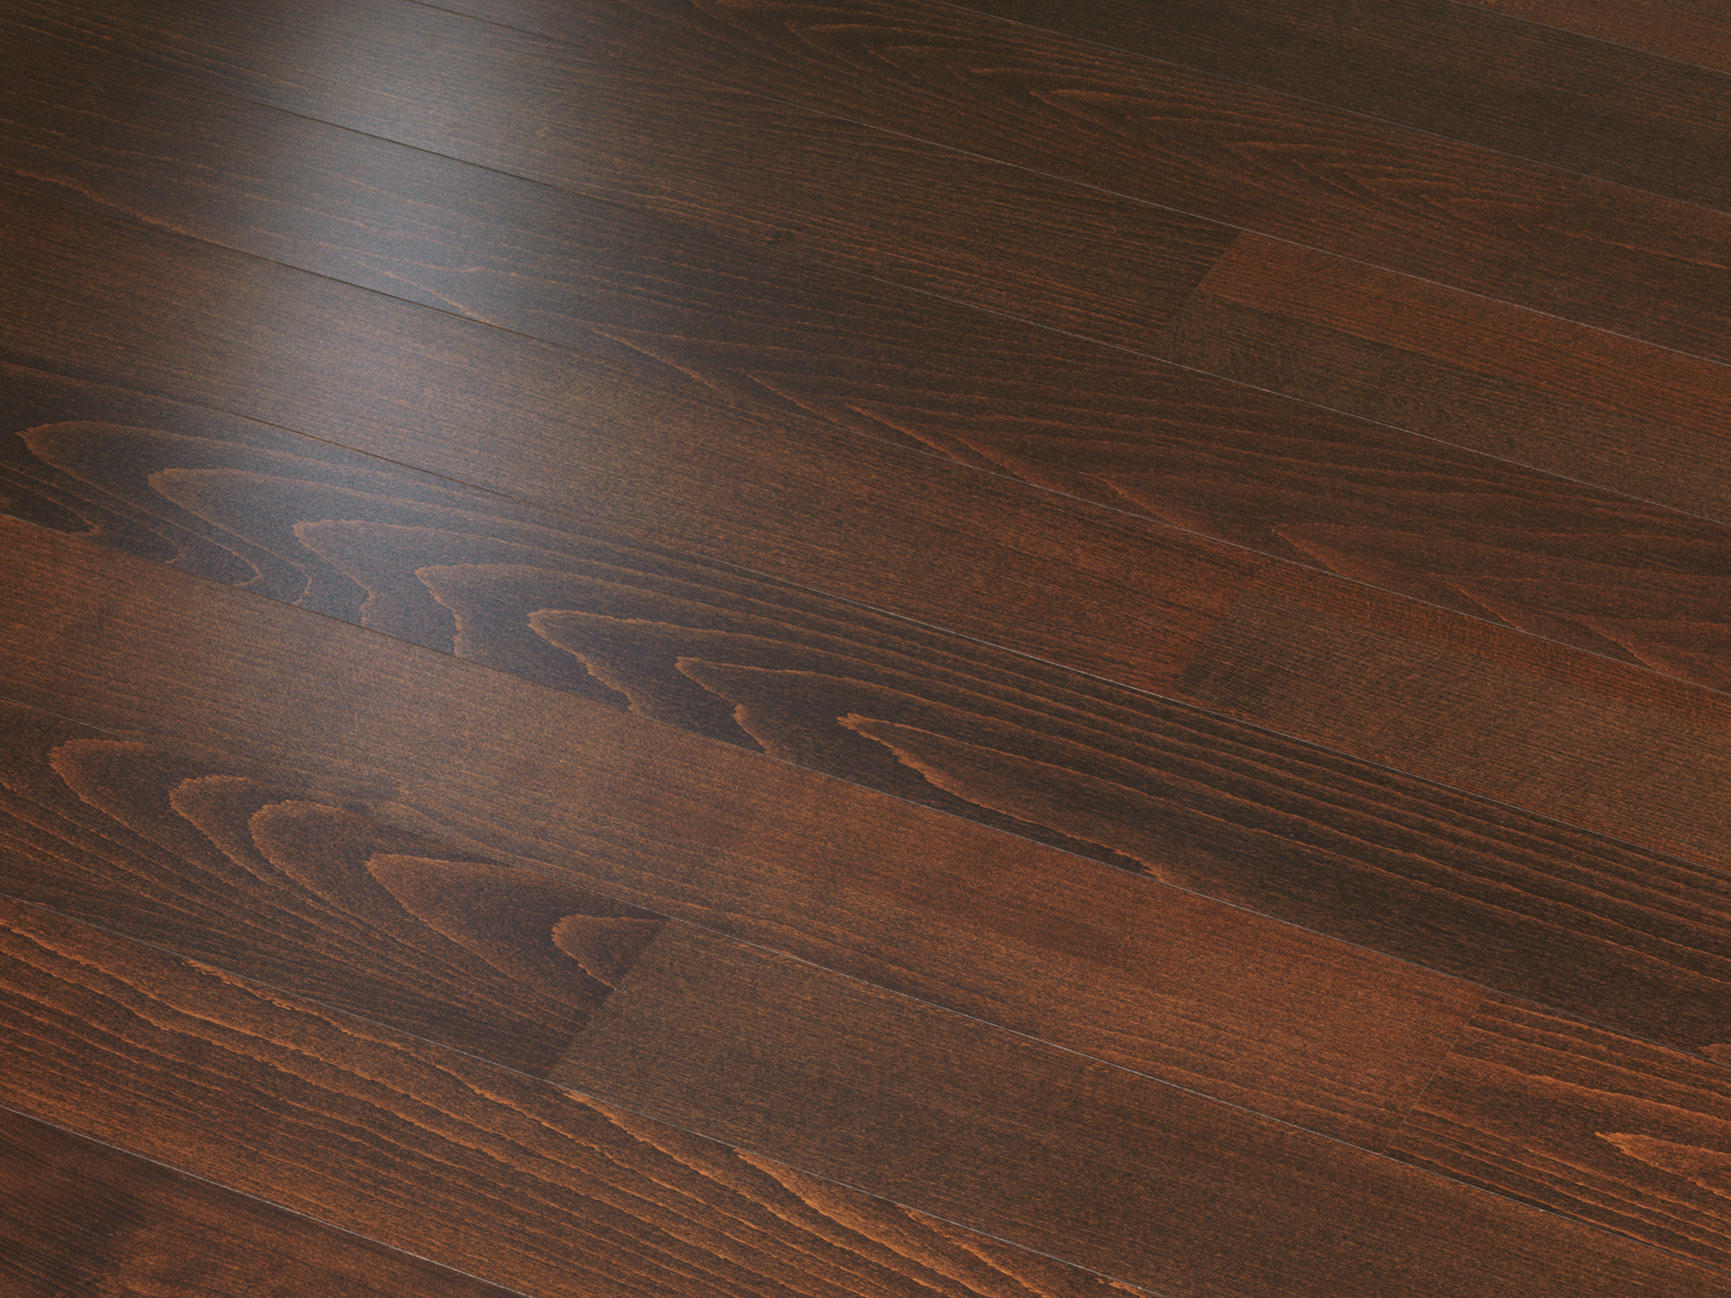 Par Ky Lounge 06 Sealed Coffee Beech Wood Flooring From